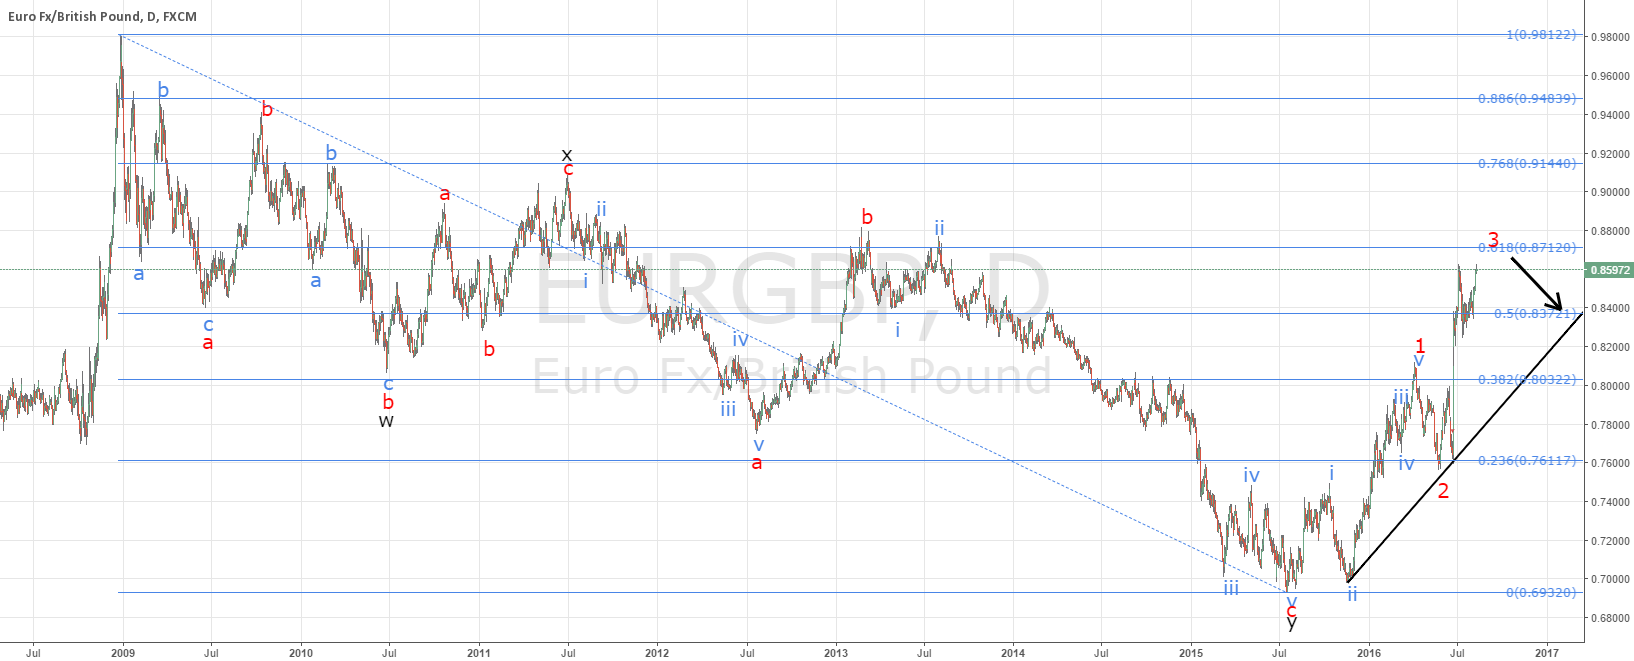 EURGBP little higher then down